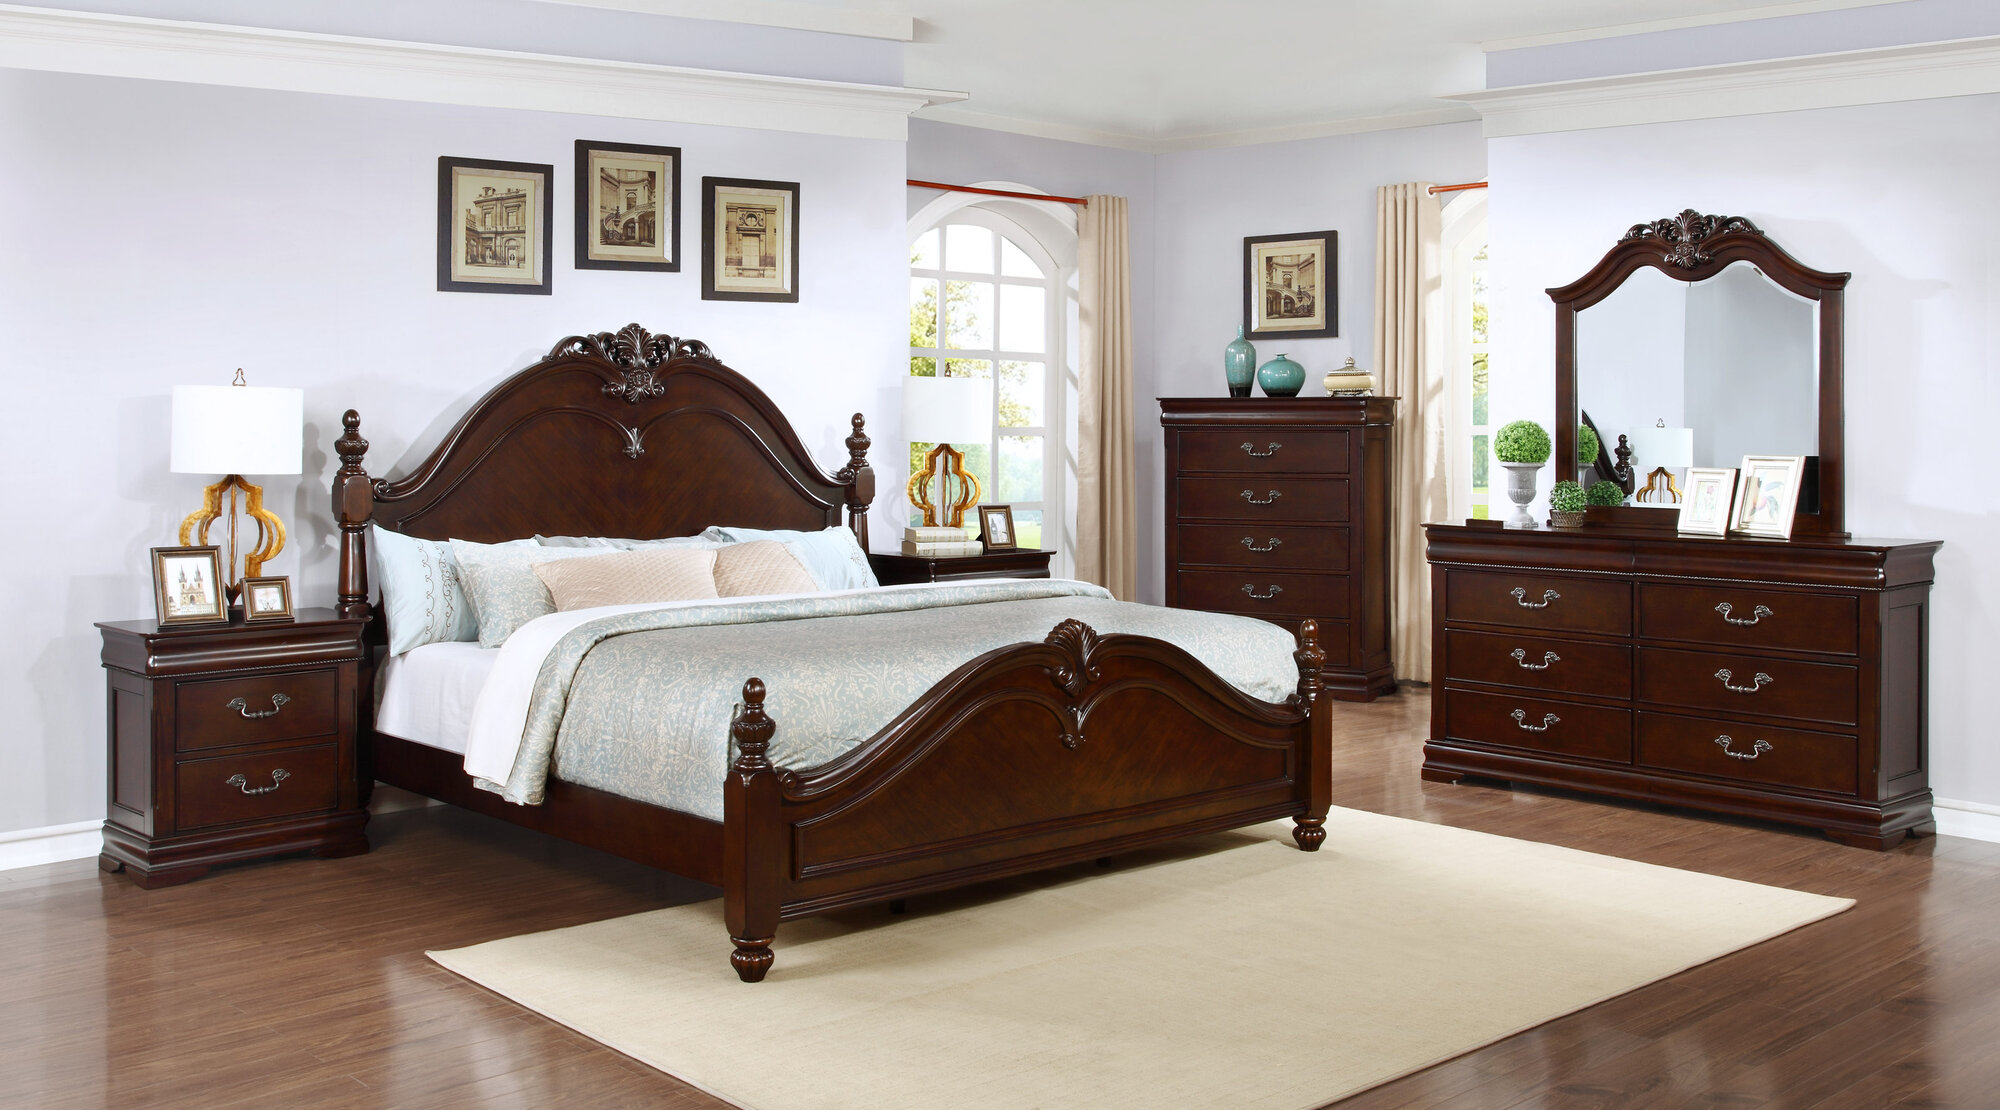 Best quality furniture panel 4 piece bedroom set ebay for Popular bedroom sets